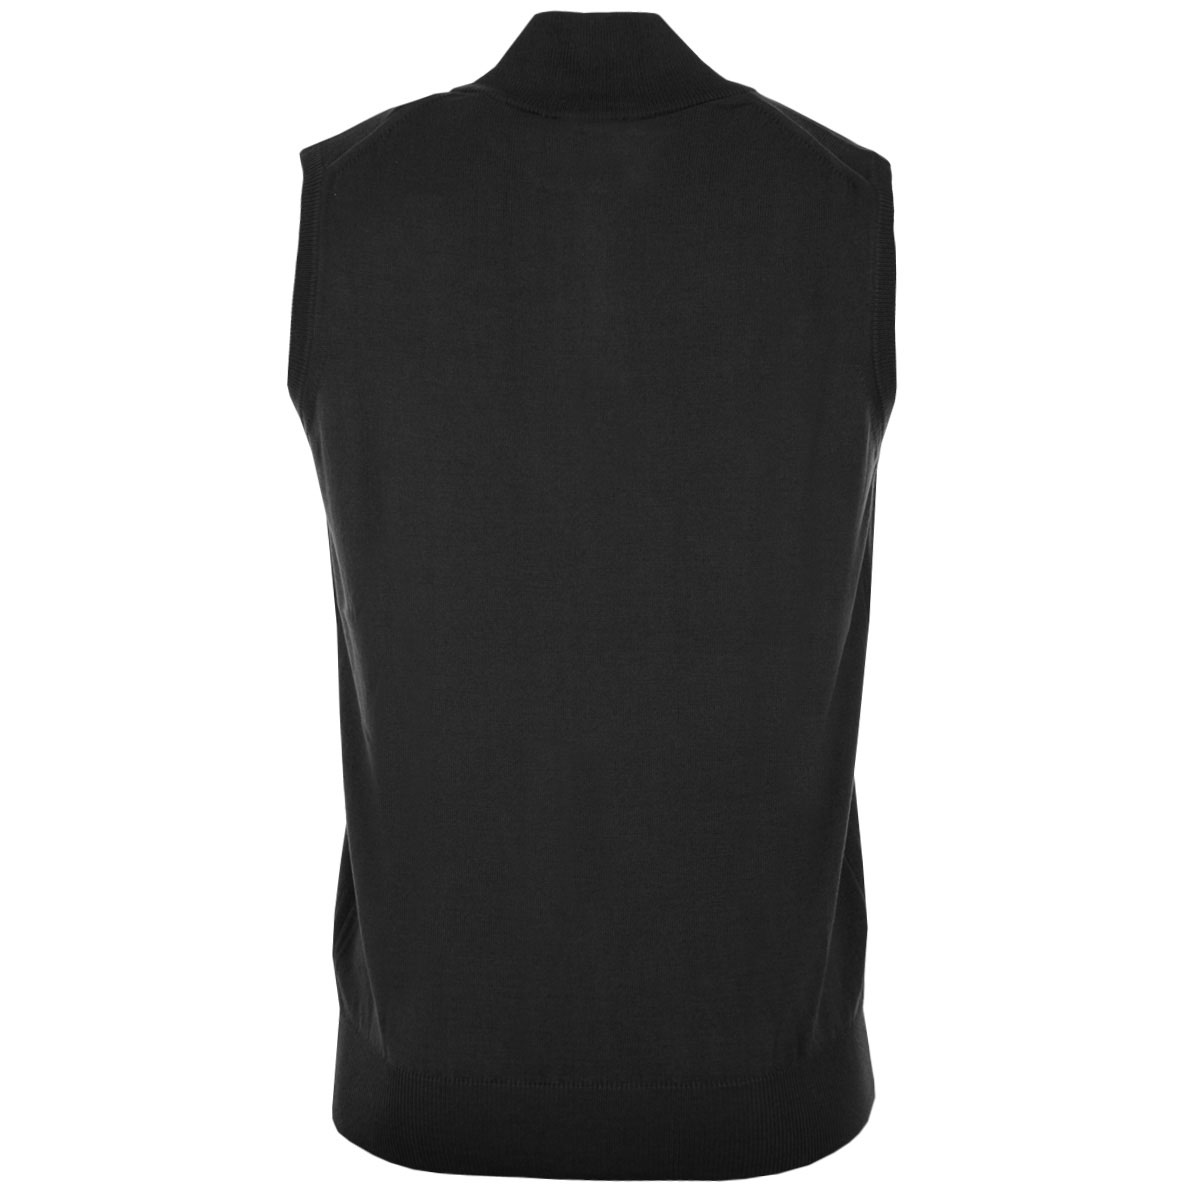 Calvin-Klein-Golf-Mens-CK-V-Neck-Sleeveless-Sweater-Vest-Gilet-27-OFF-RRP thumbnail 9